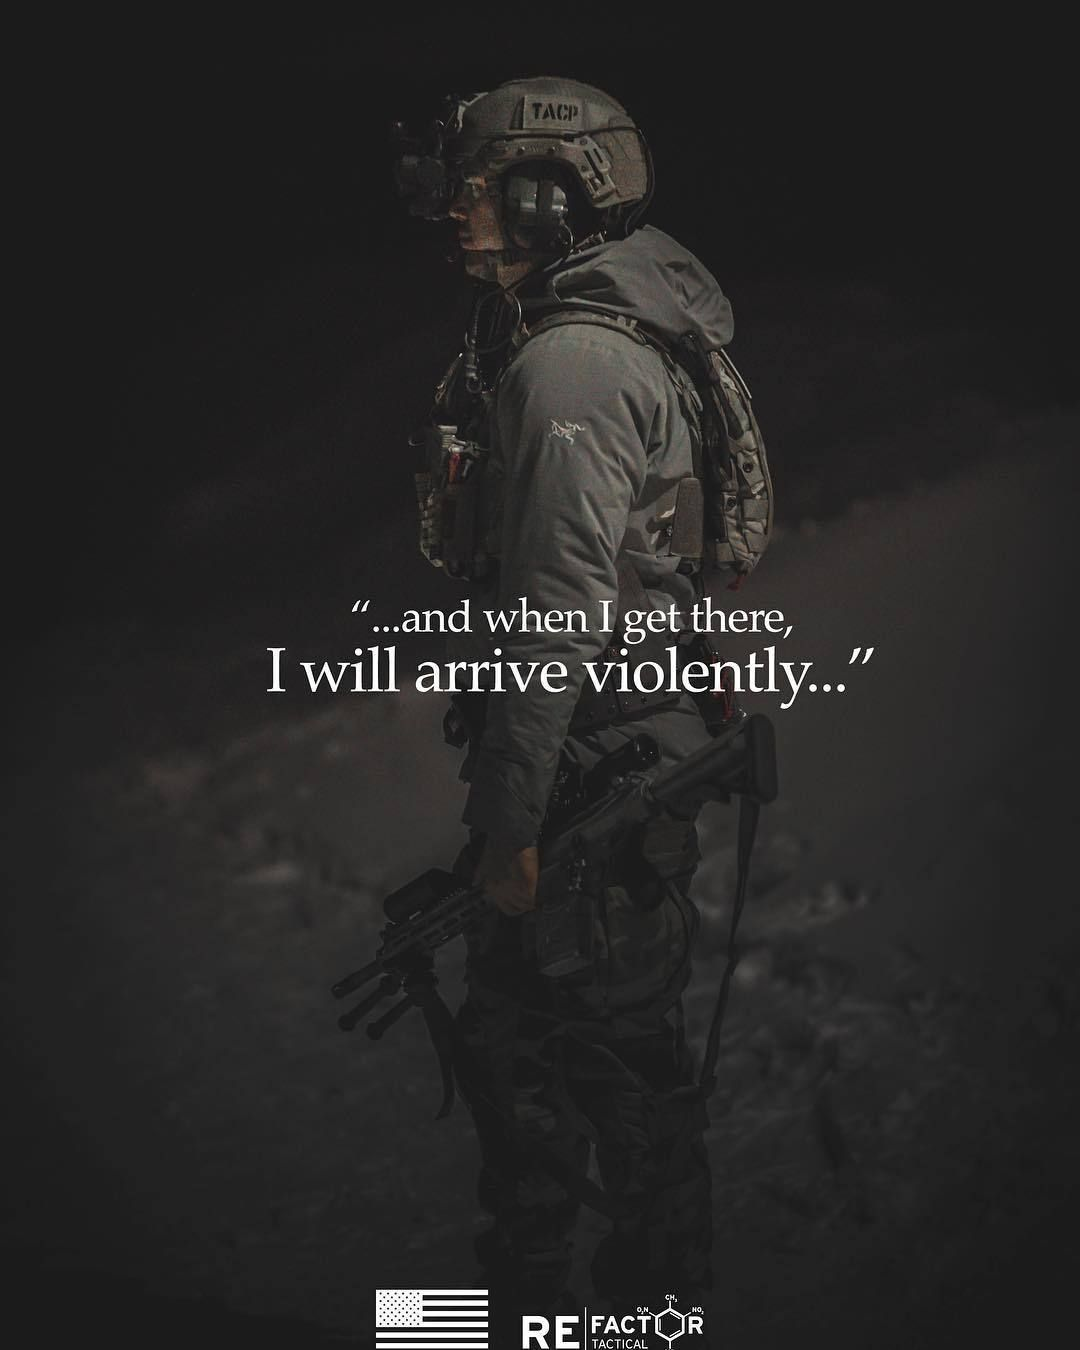 The Viking Minuteman Police Quotes Motivational Wallpaper Badass Quotes